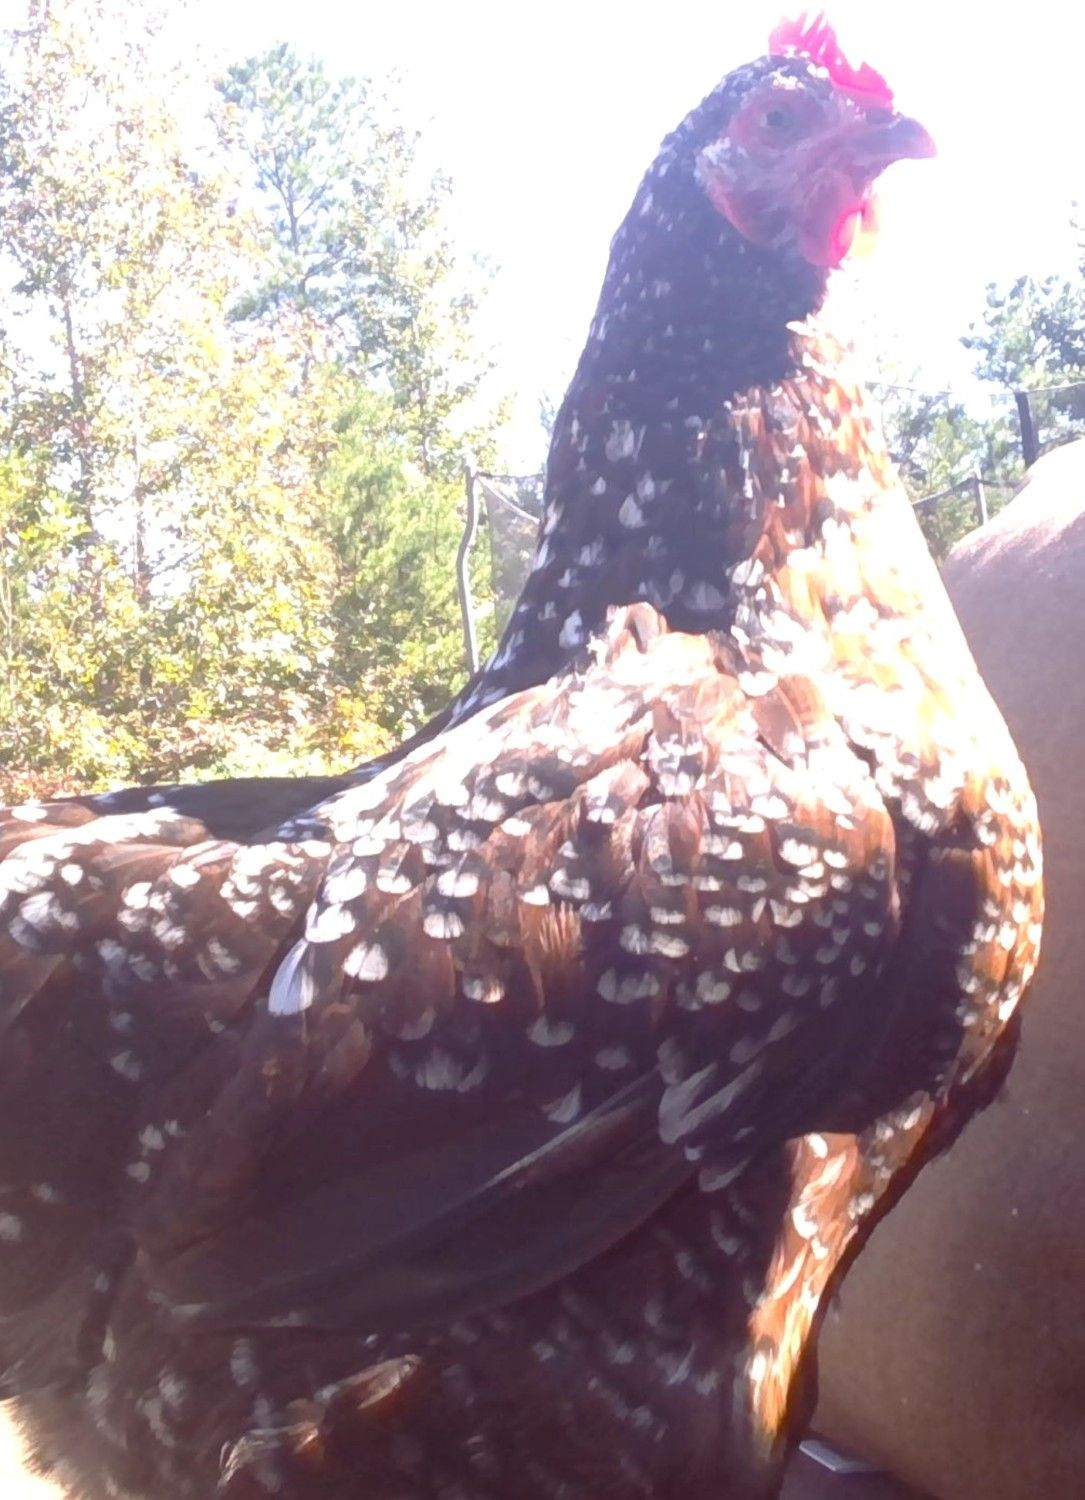 vachick15's photos in Show off your chickens